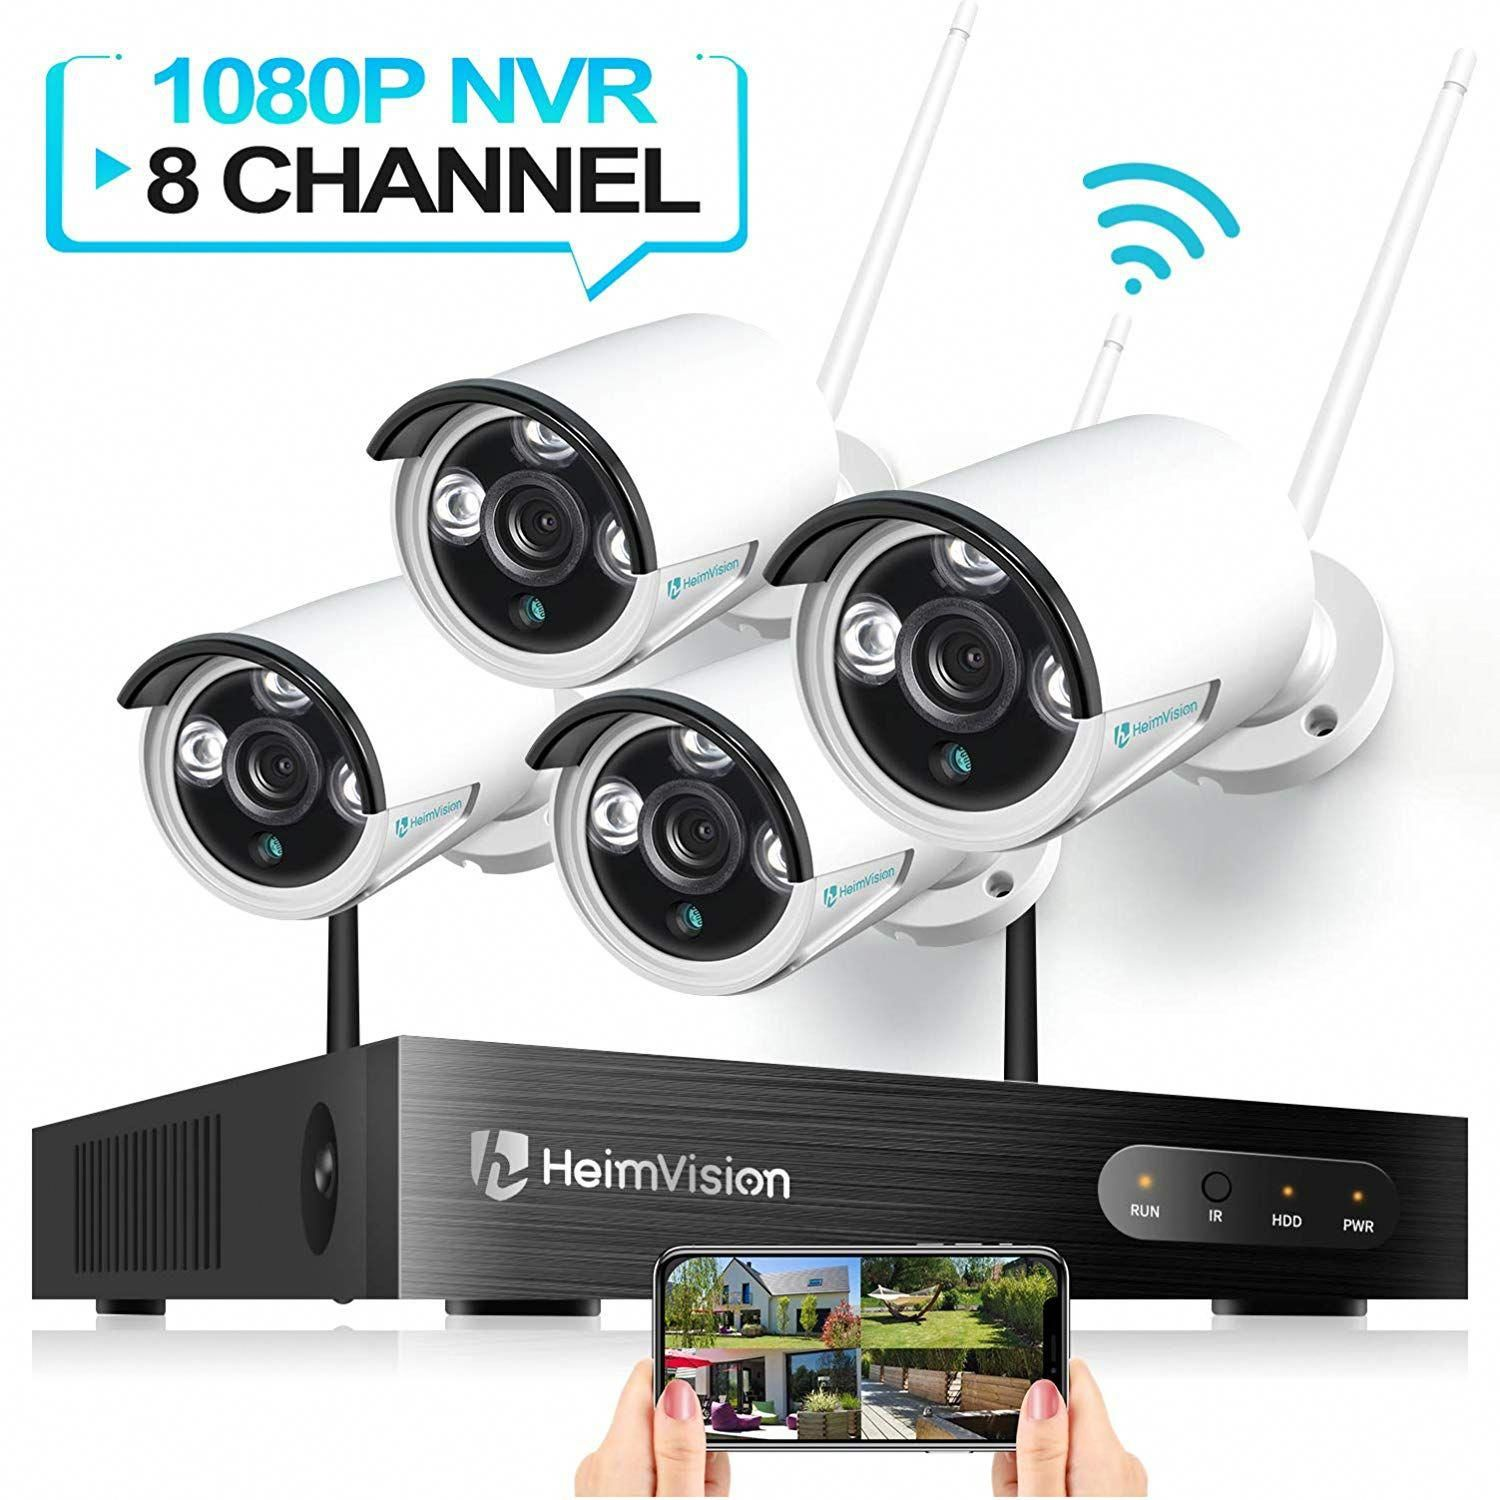 Heimvision Hm241 Wireless Security Camera System 8ch 1080p Nvr 4pcs 960 Wireless Security Camera System Home Security Camera Systems Security Cameras For Home